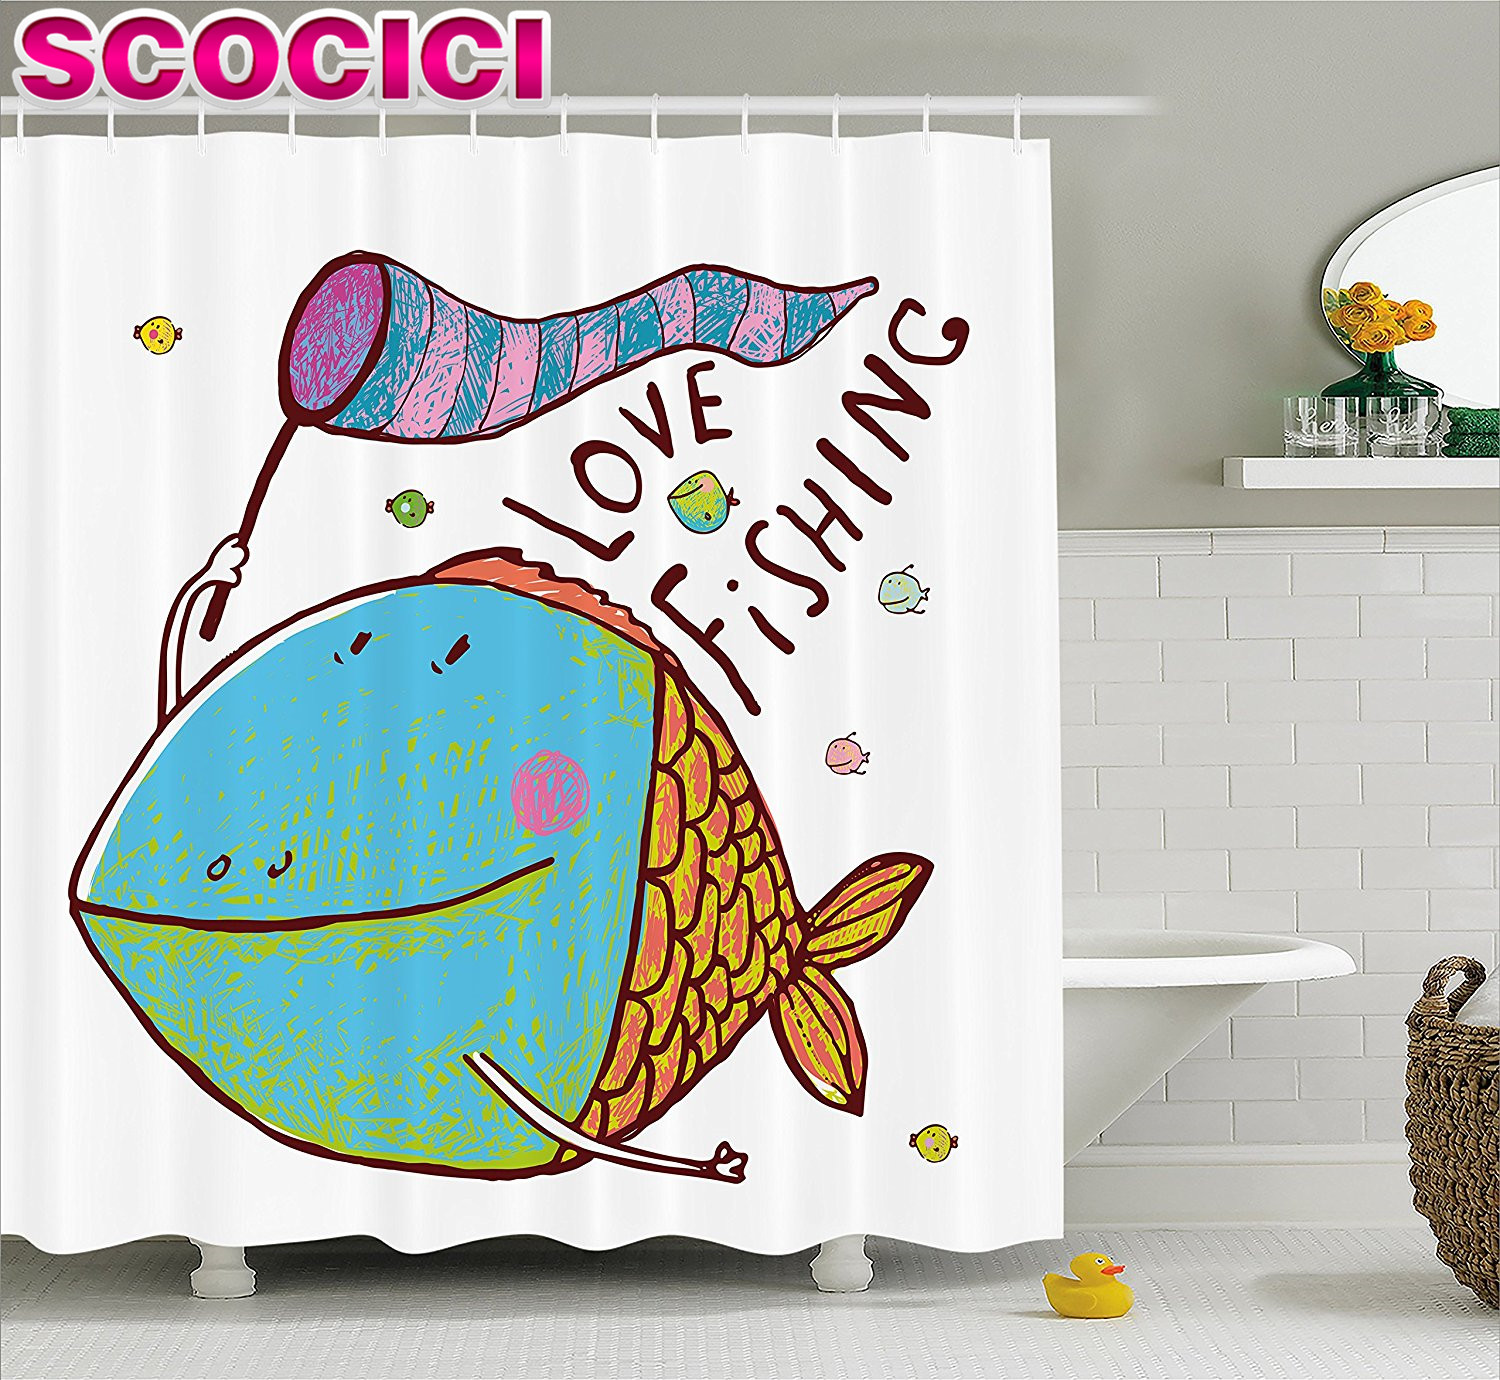 Bathroom Fish Decor Fish Themed Bathroom Promotion Shop For Promotional Fish Themed